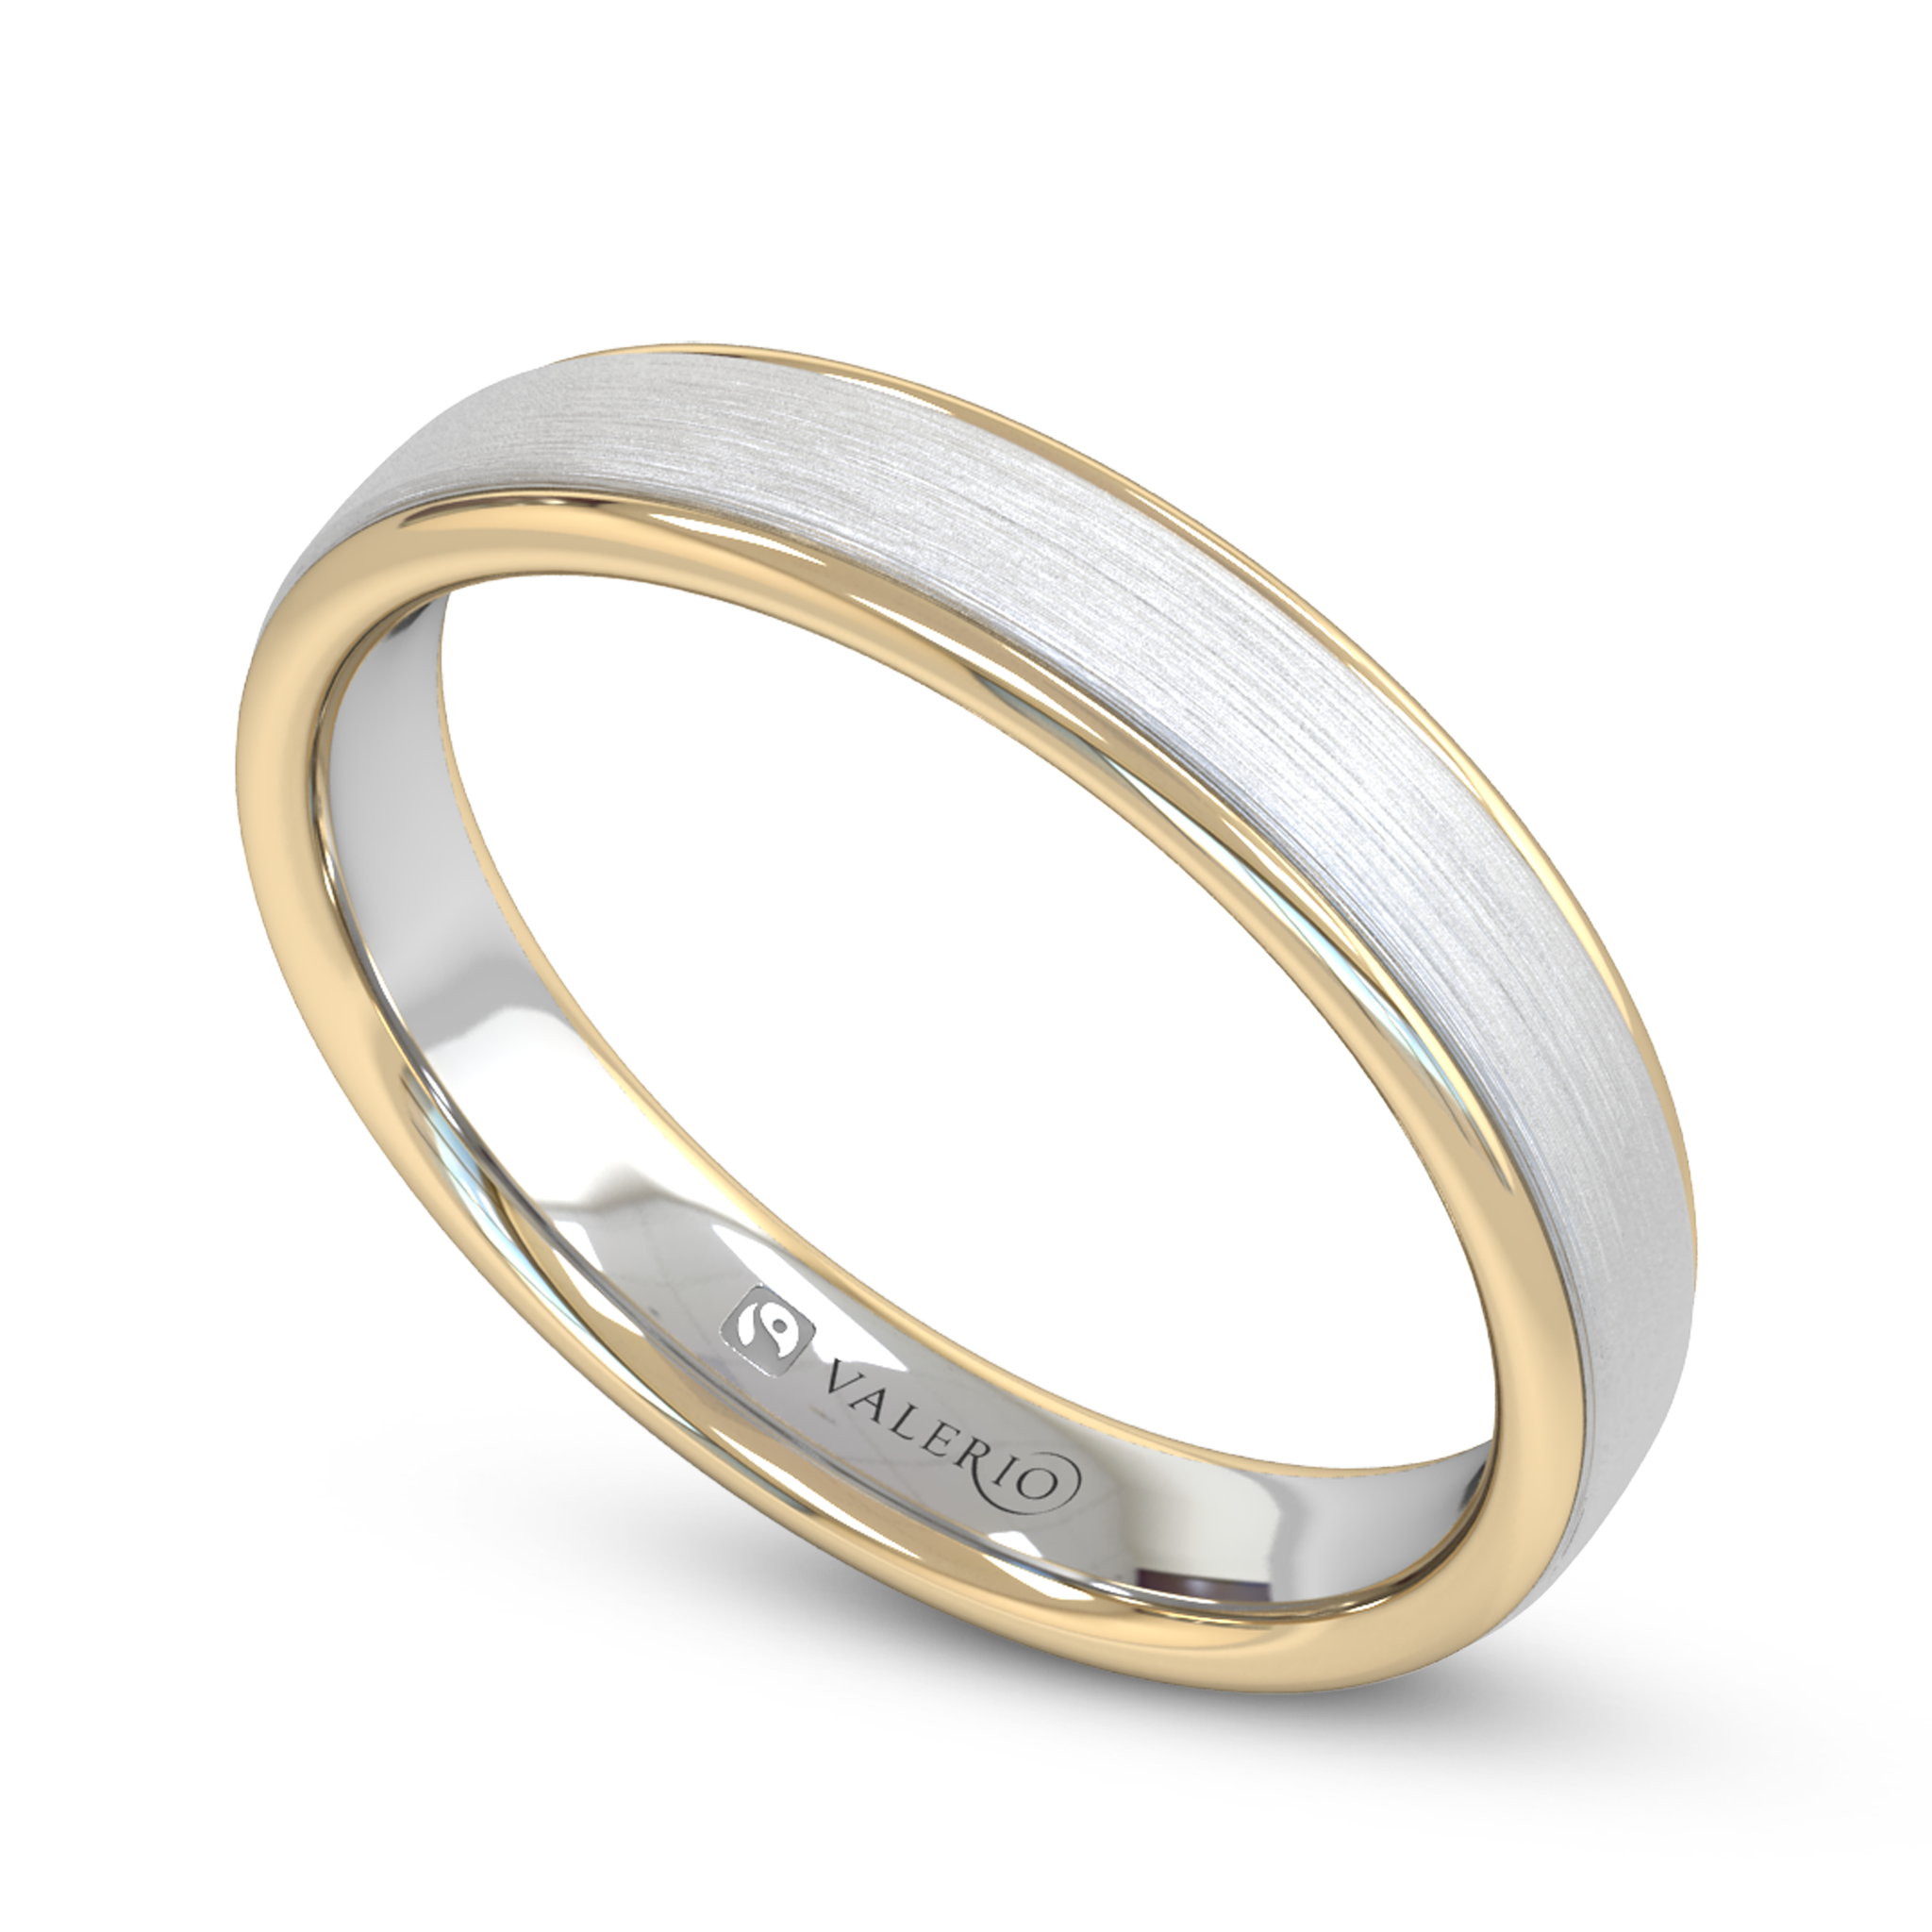 A stylish Fairtrade Court wedding ring created from white and yellow 18ct gold. An iconic symbol of matrimonial love. £1000